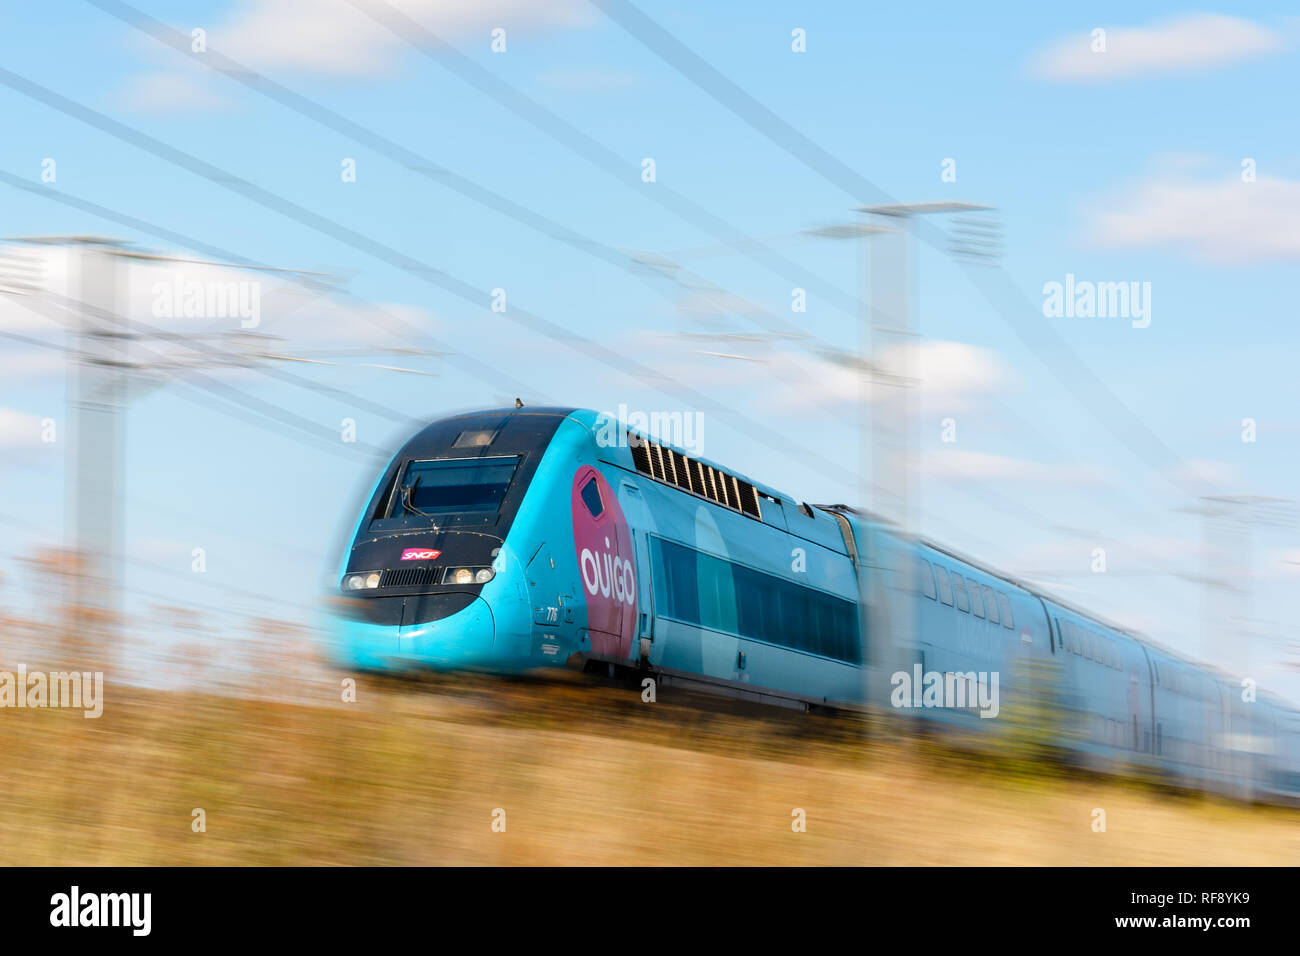 A TGV Duplex high-speed train in Ouigo livery from french company SNCF driving at full speed on the East European high-speed line. - Stock Image